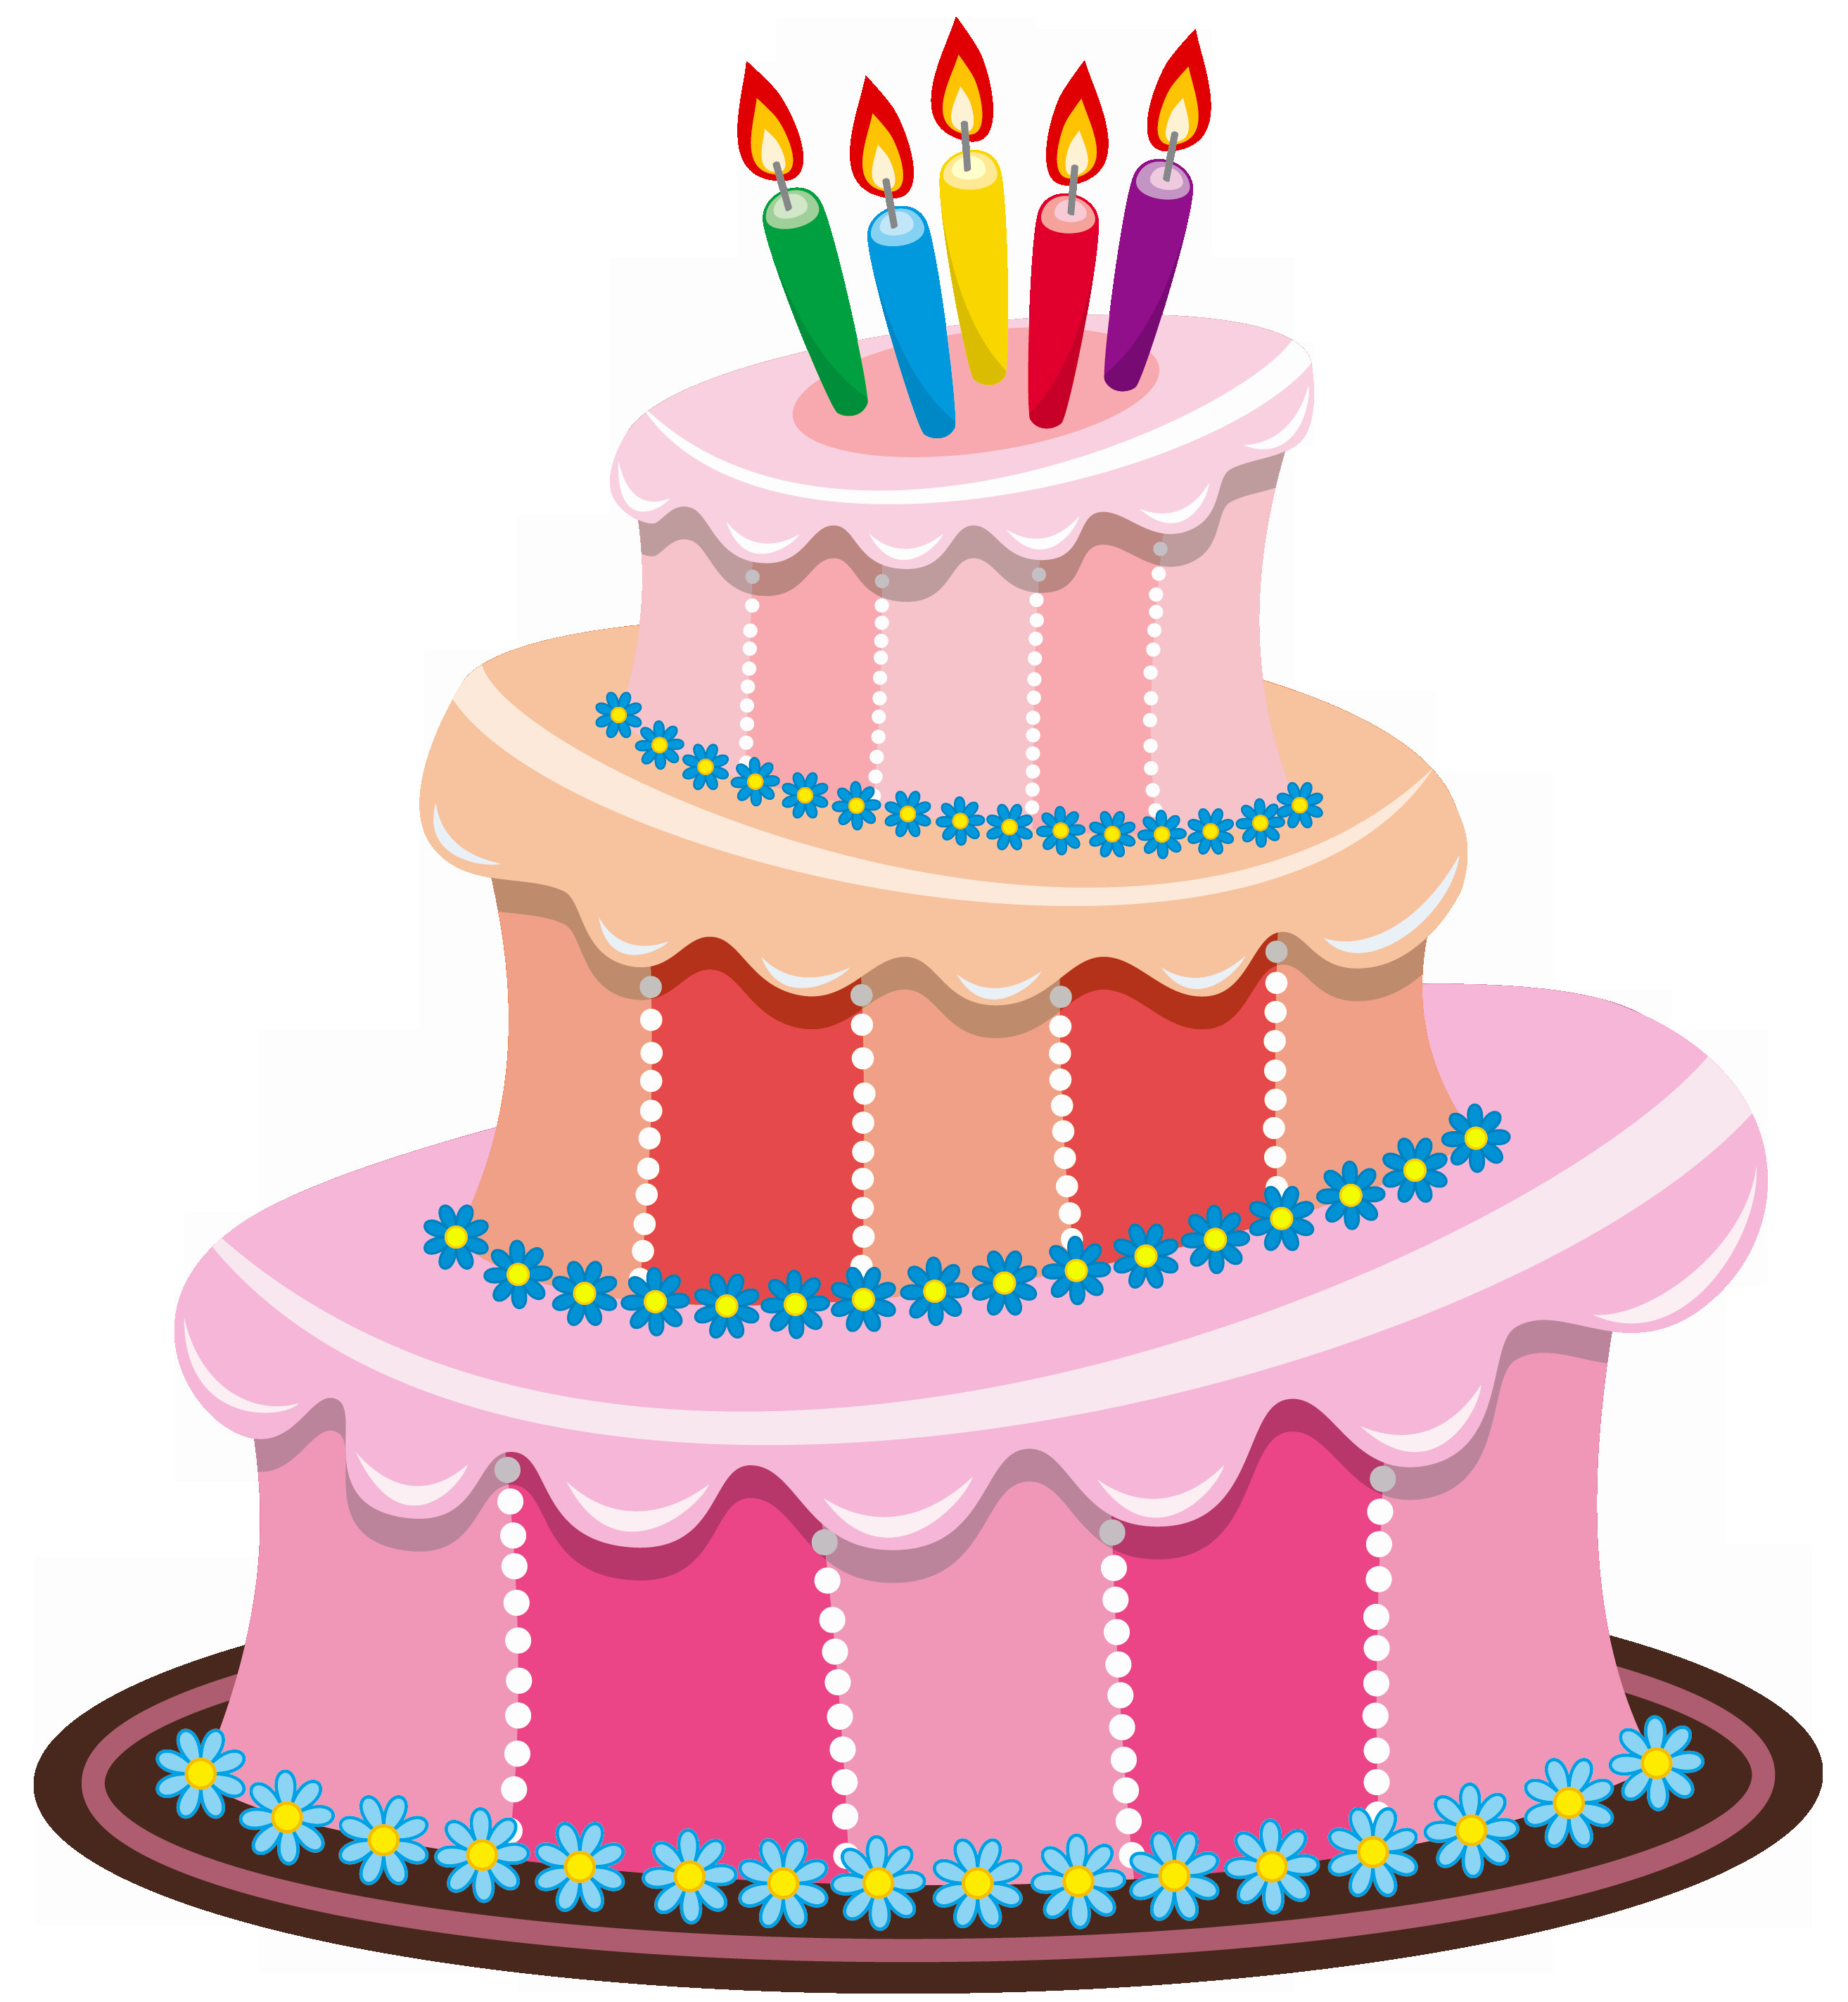 Best ideas about Clip Art Birthday Cake . Save or Pin Birthday Cake Clip Art Free Download Clip Art Now.